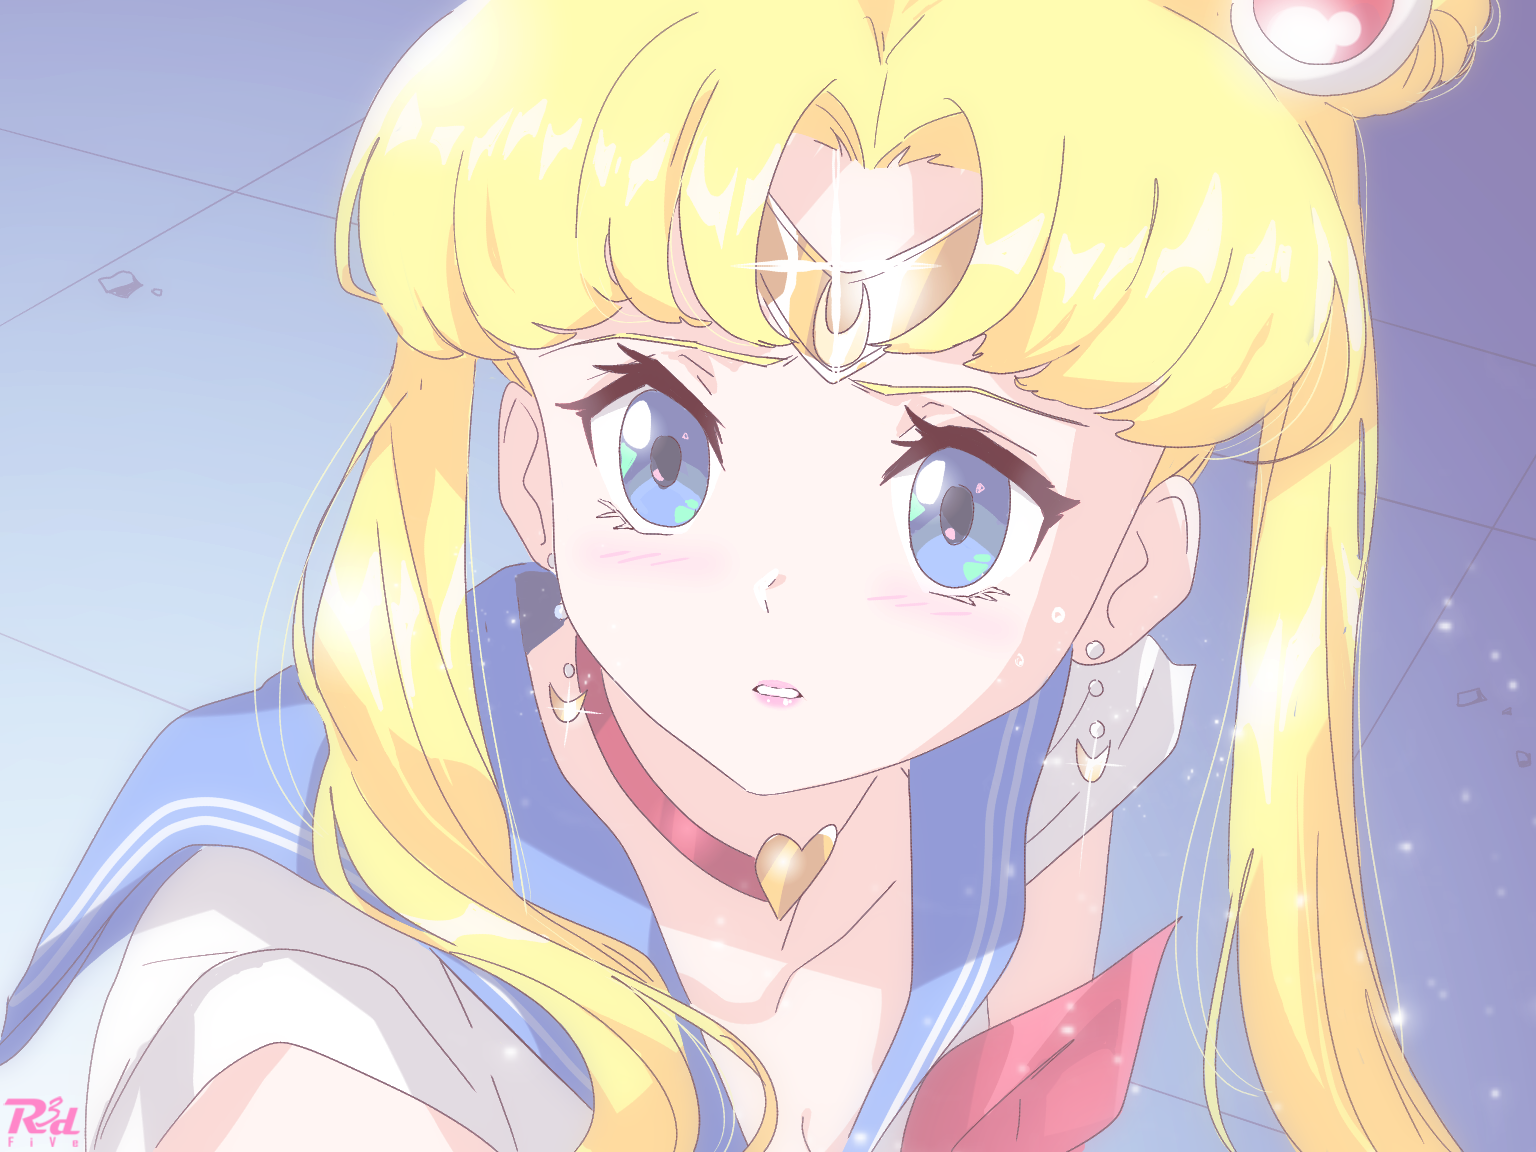 #sailormoonredraw